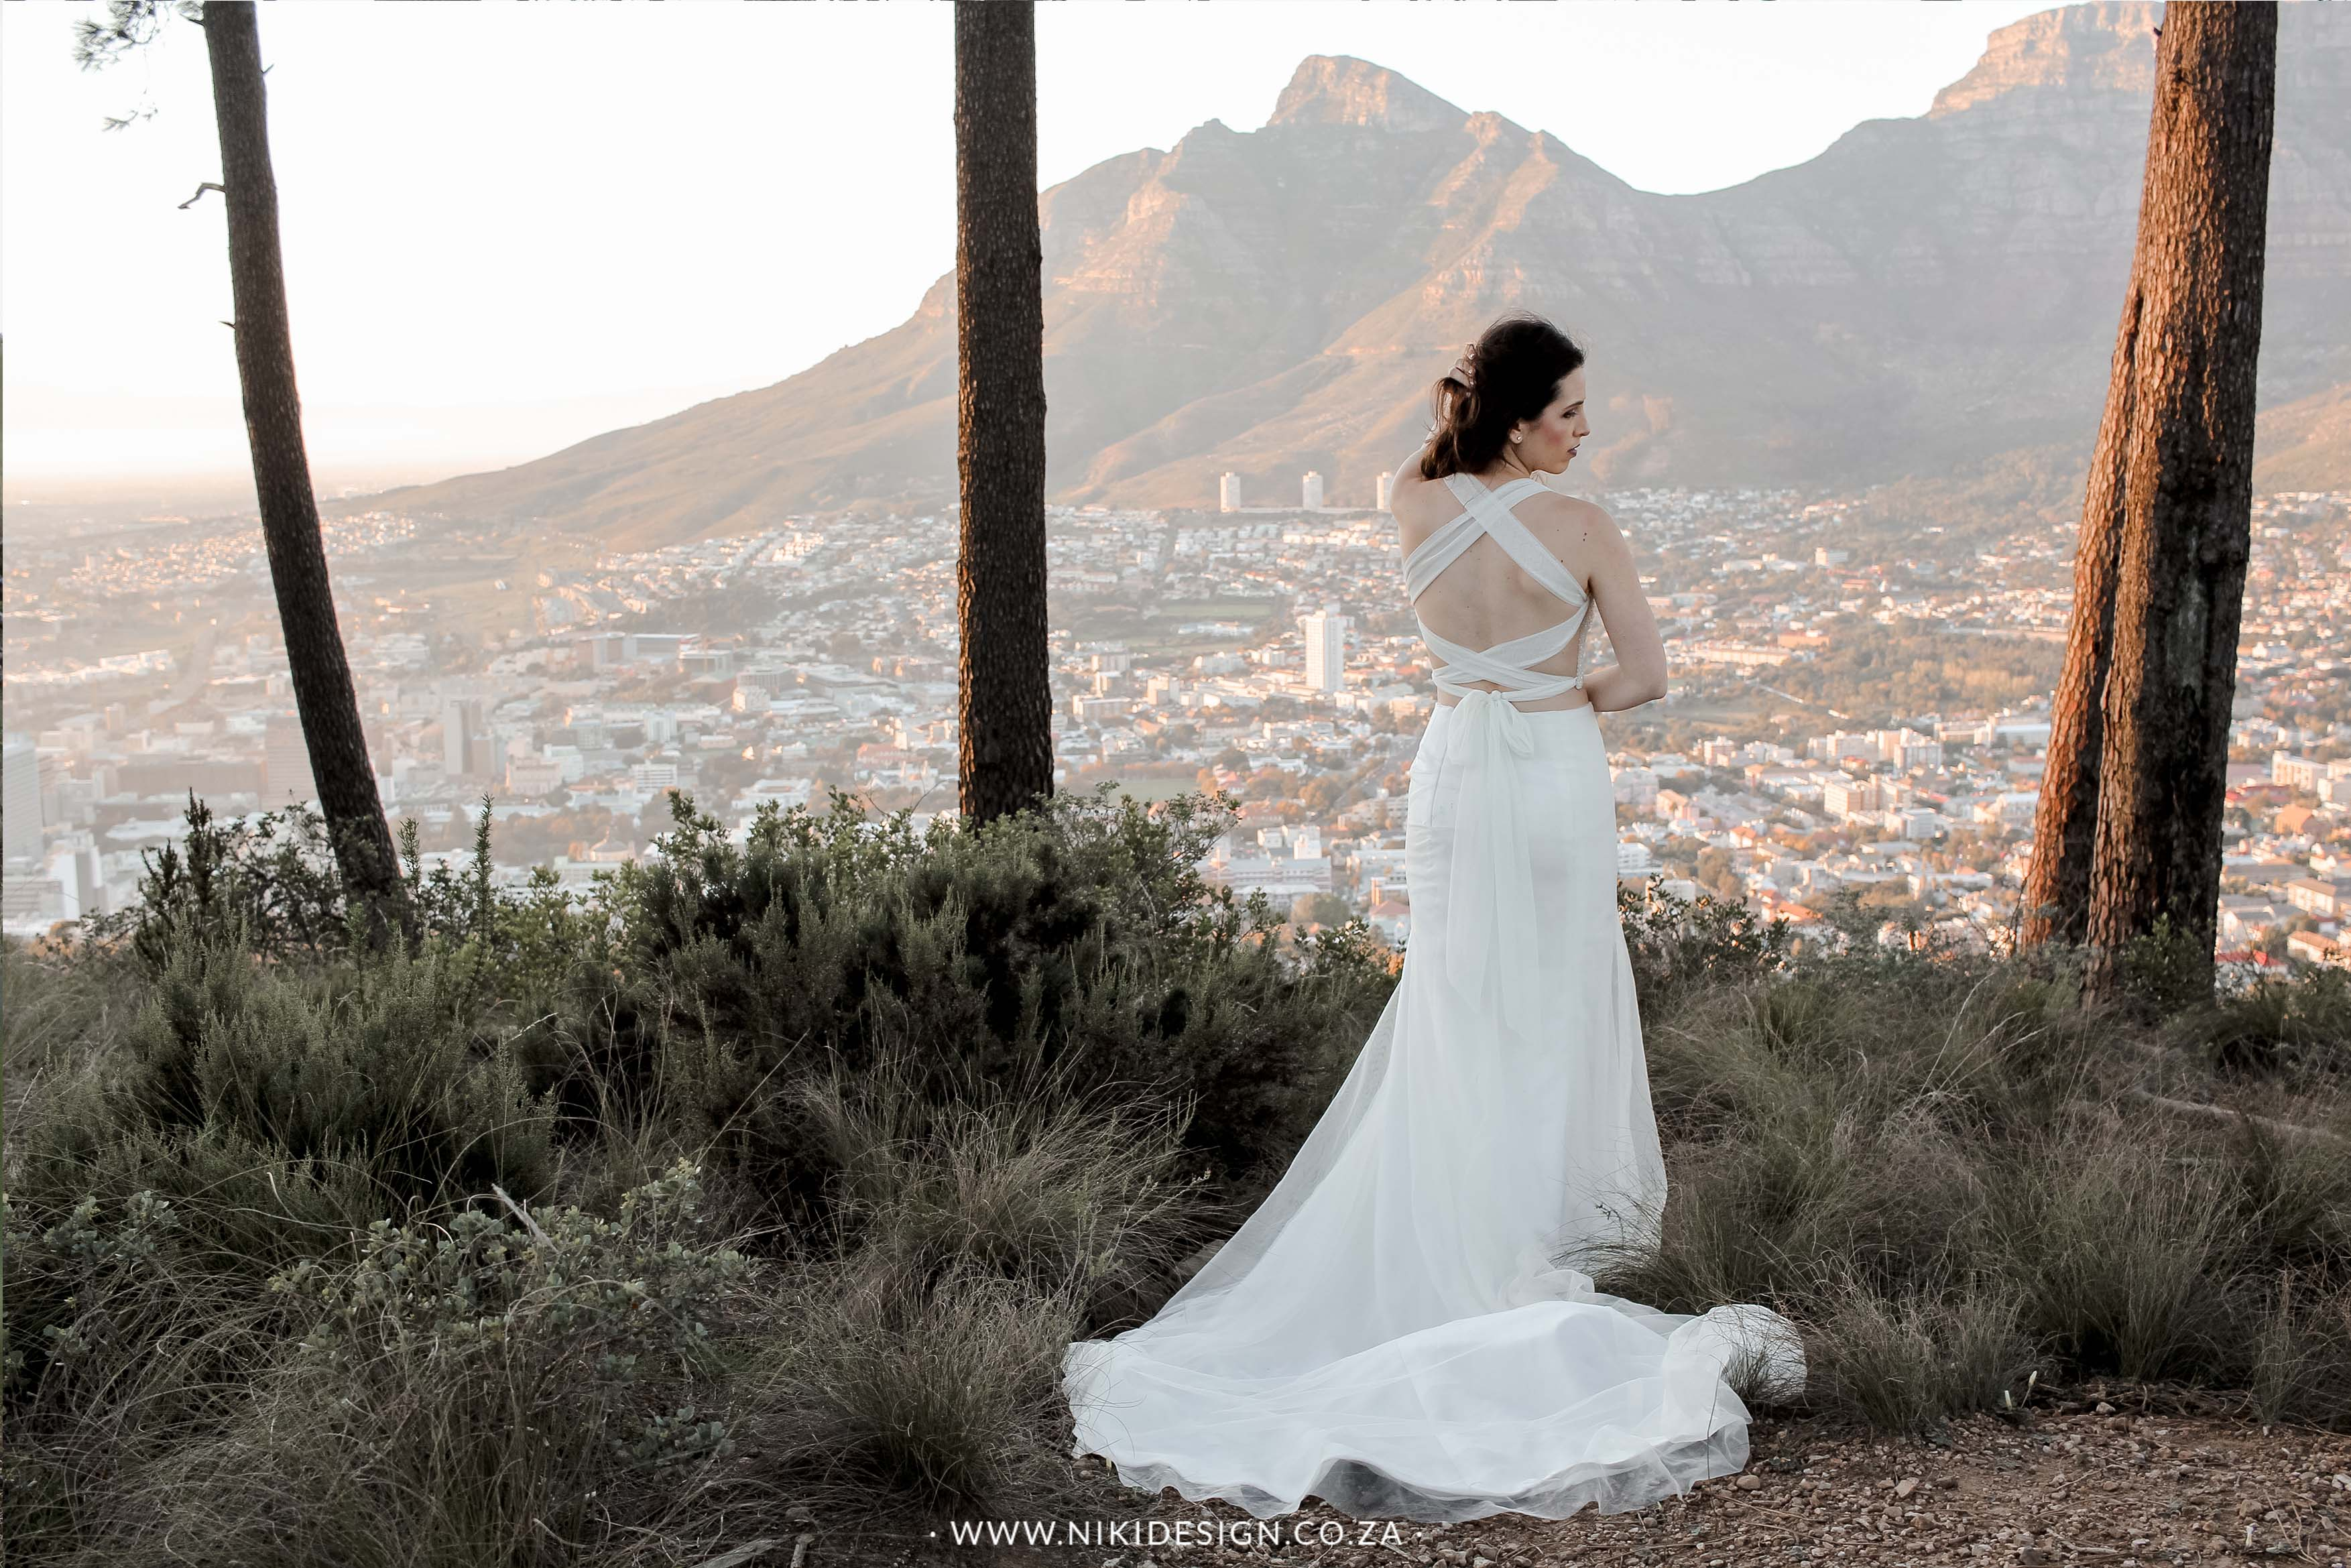 NikiDesign Studio Table Mountain wedding